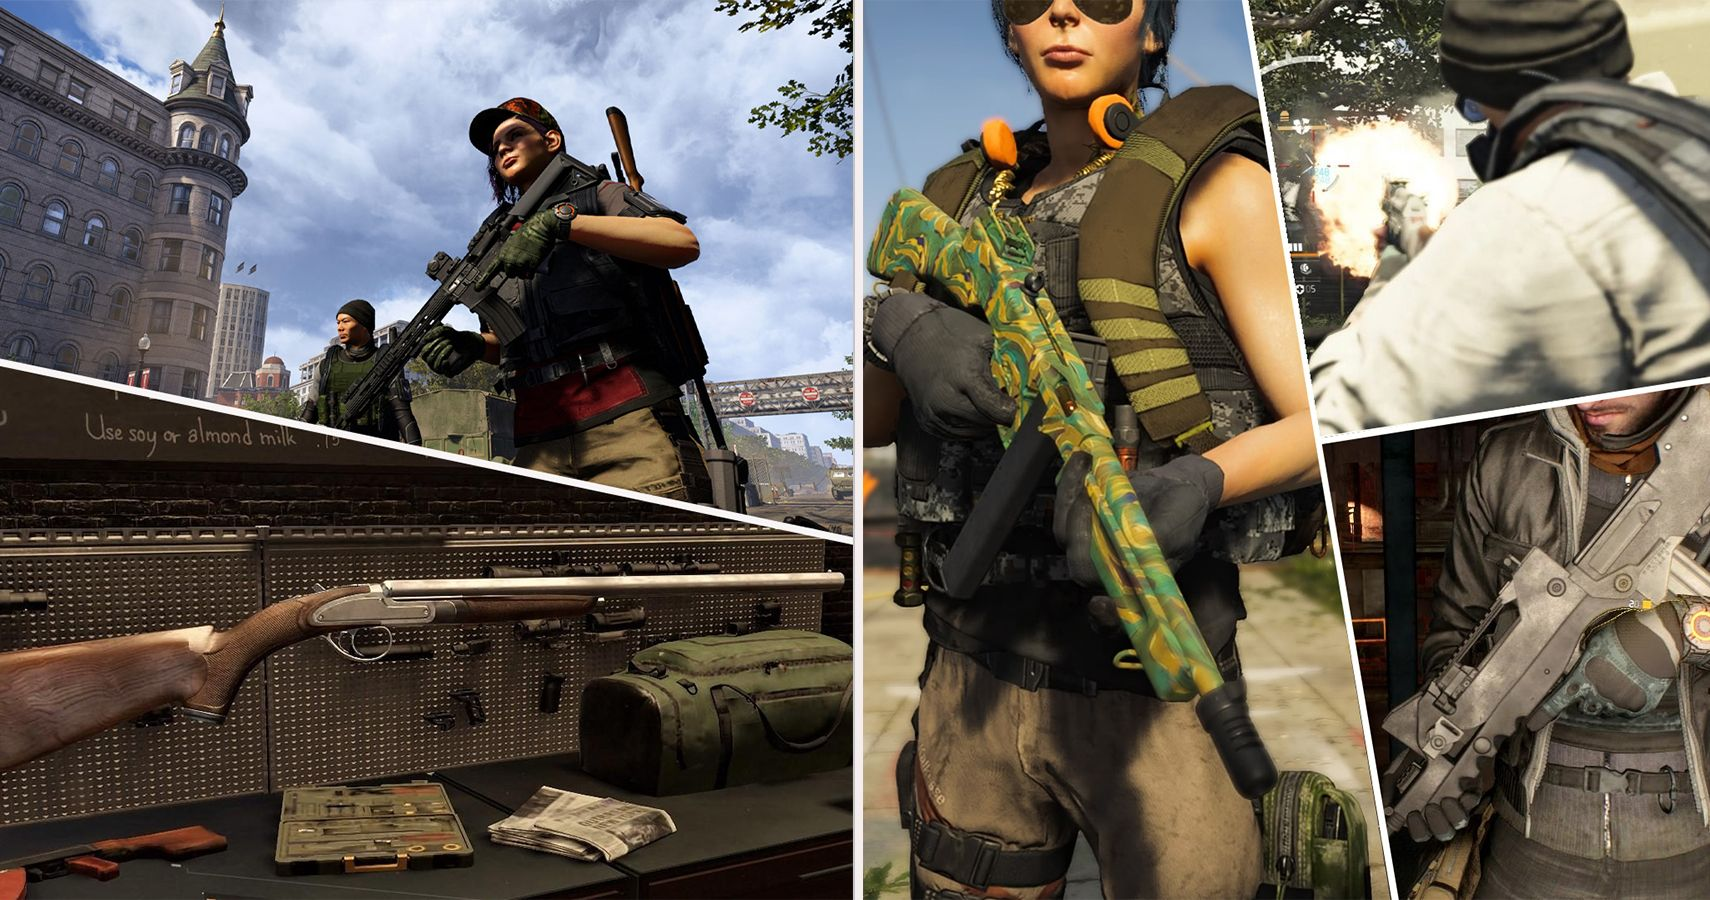 The 15 Best Weapons In The Division 2 (And The 5 Worst)